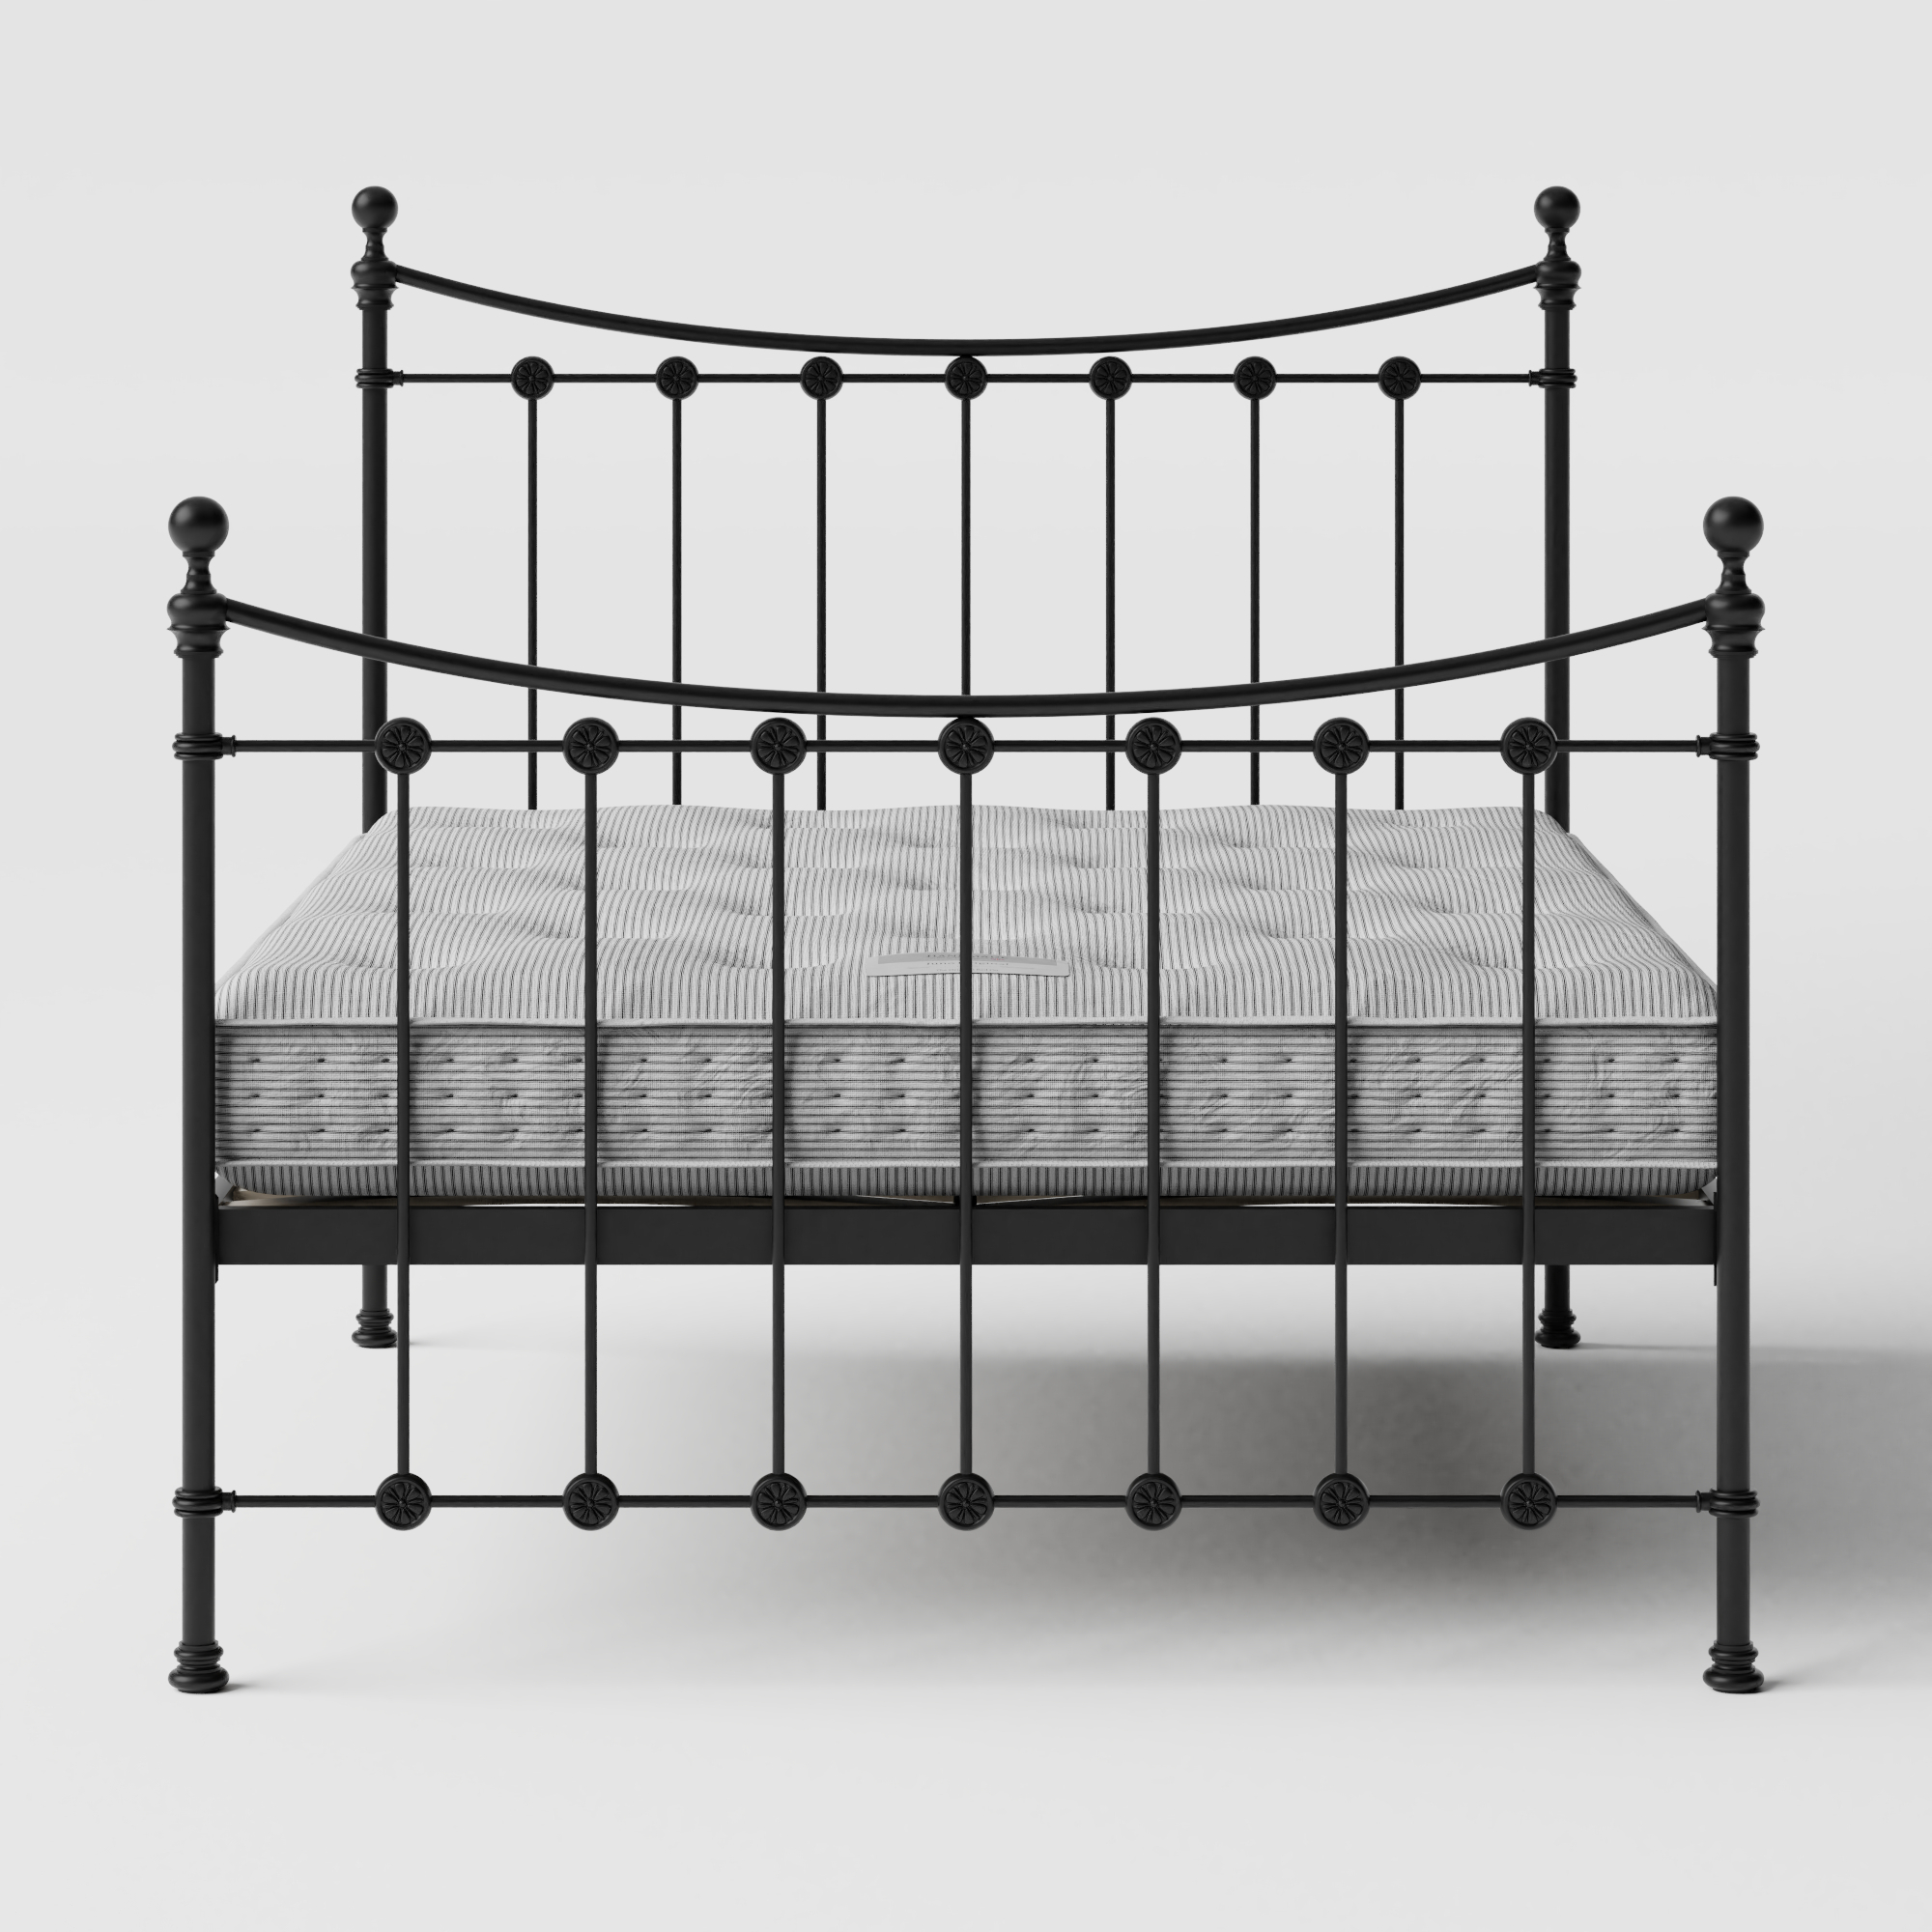 Carrick Solo iron/metal bed in black with Juno mattress